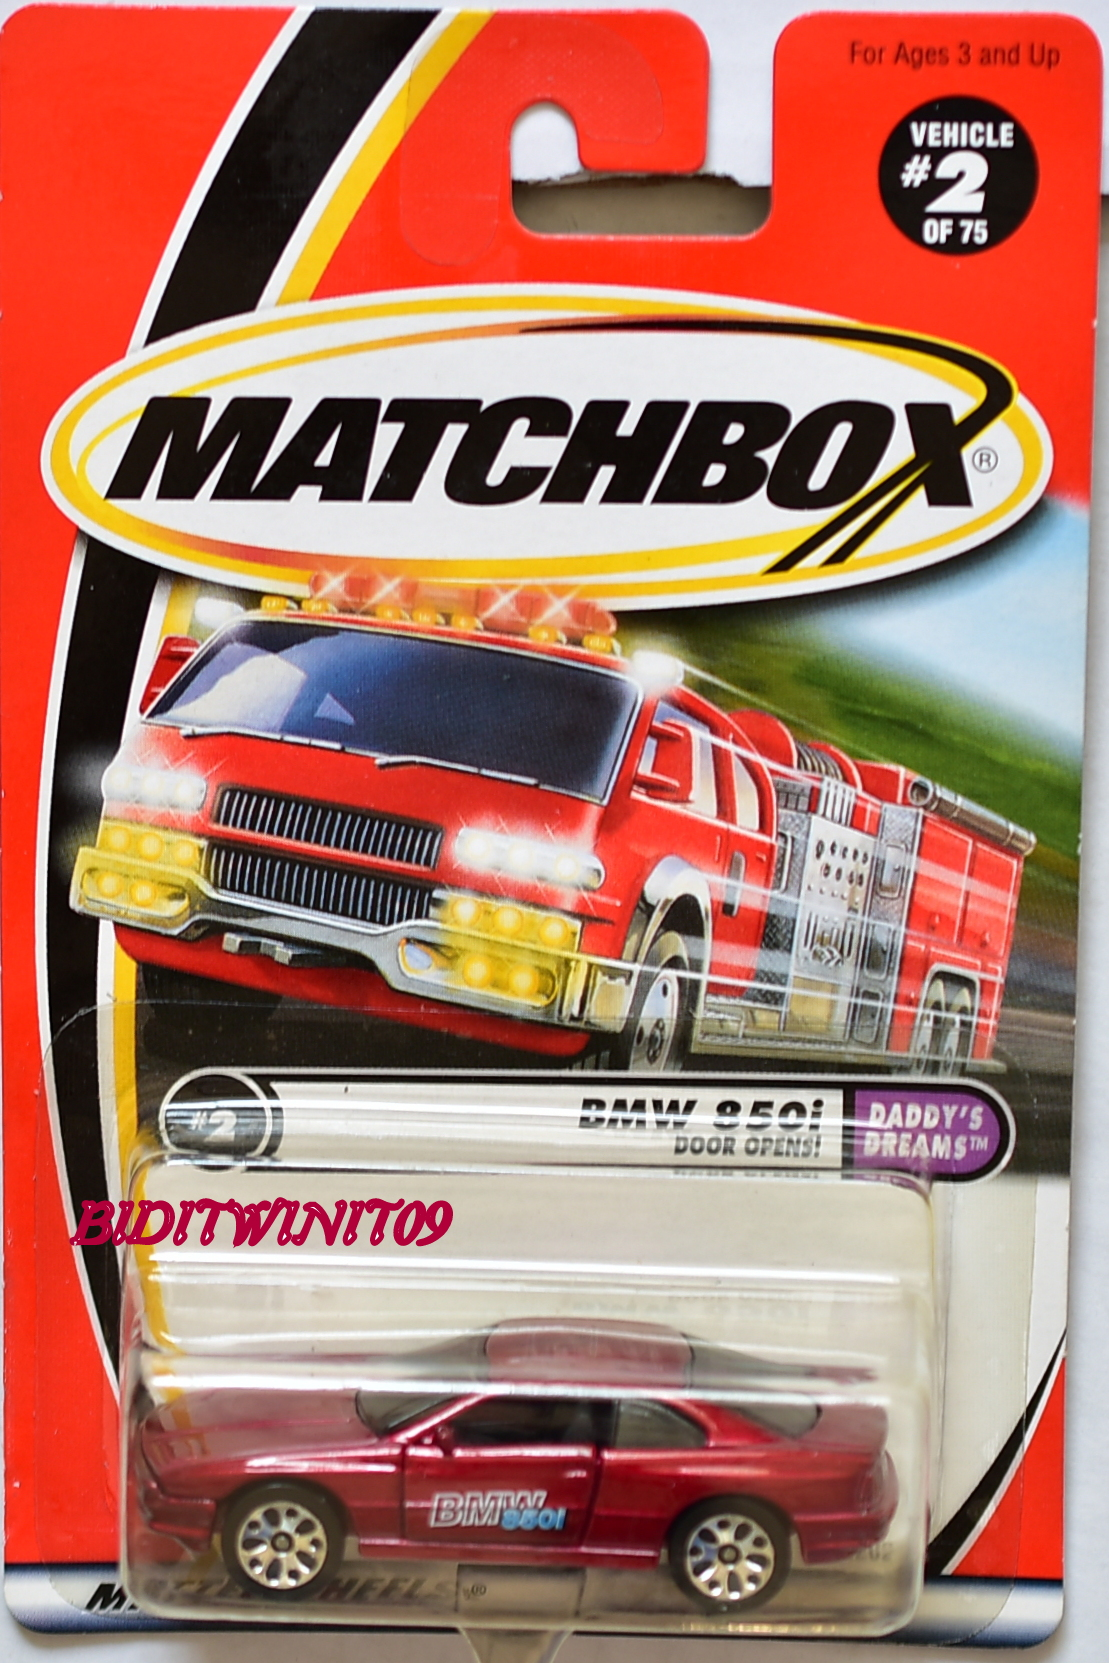 MATCHBOX 2001 DADDY'S DREAMS BMW 850I DOOR OPENS #2 E+